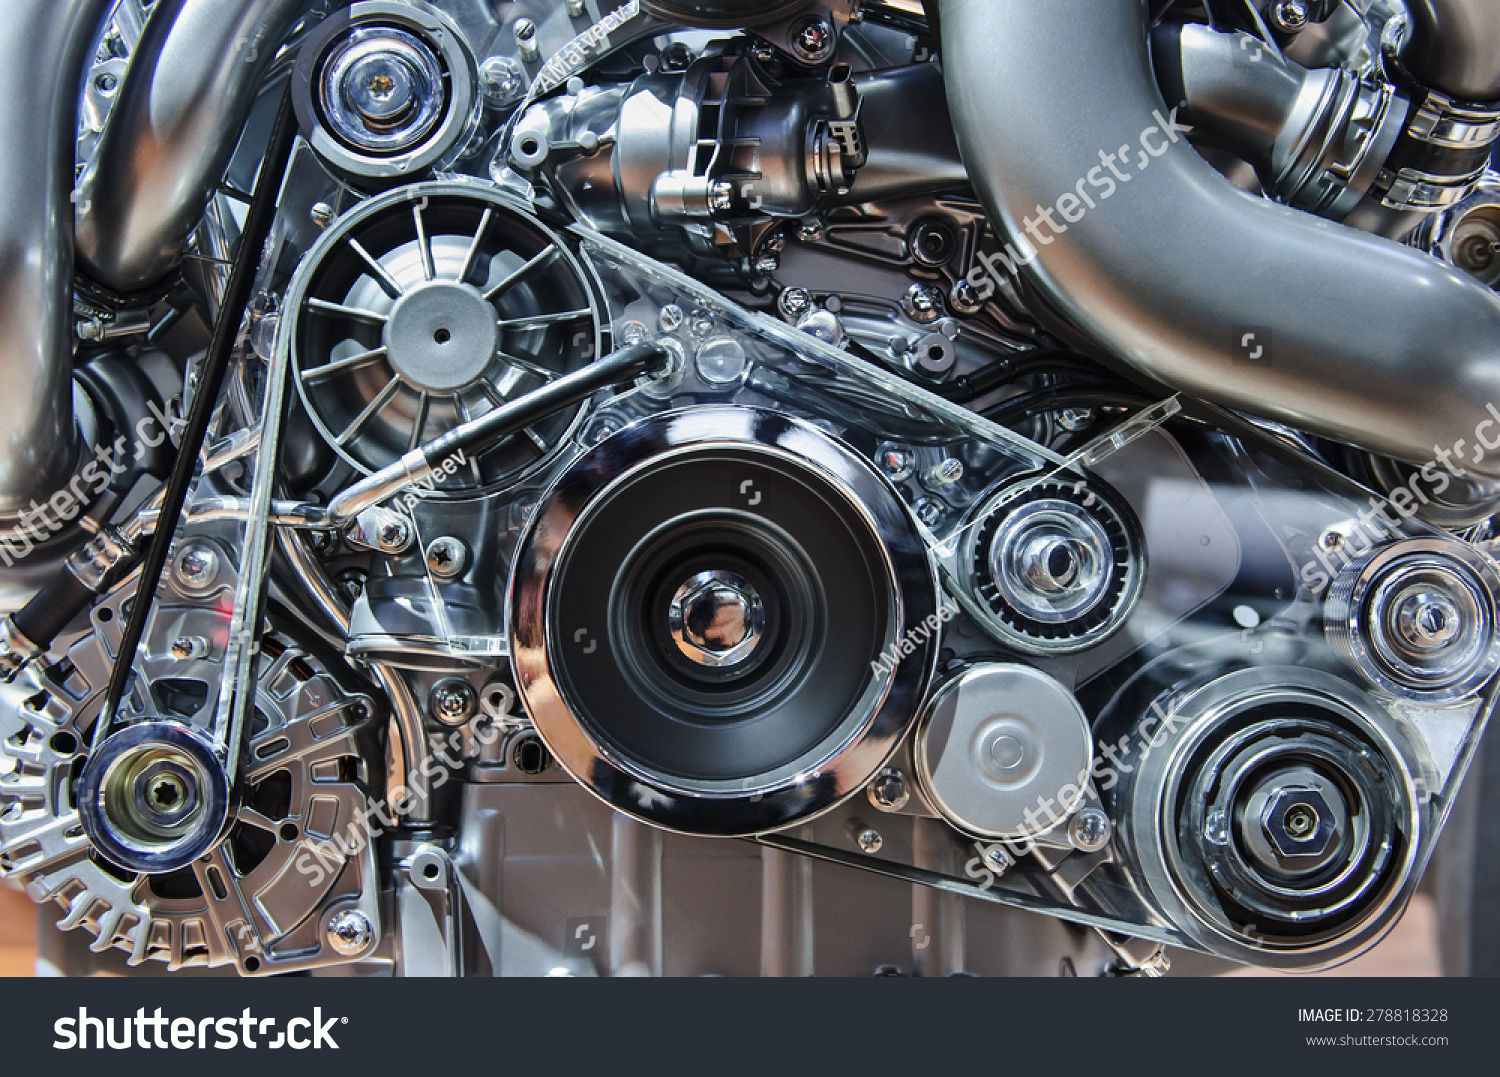 Car Engine Modern Automobile Motor Metal Stock Photo (Royalty Free ...